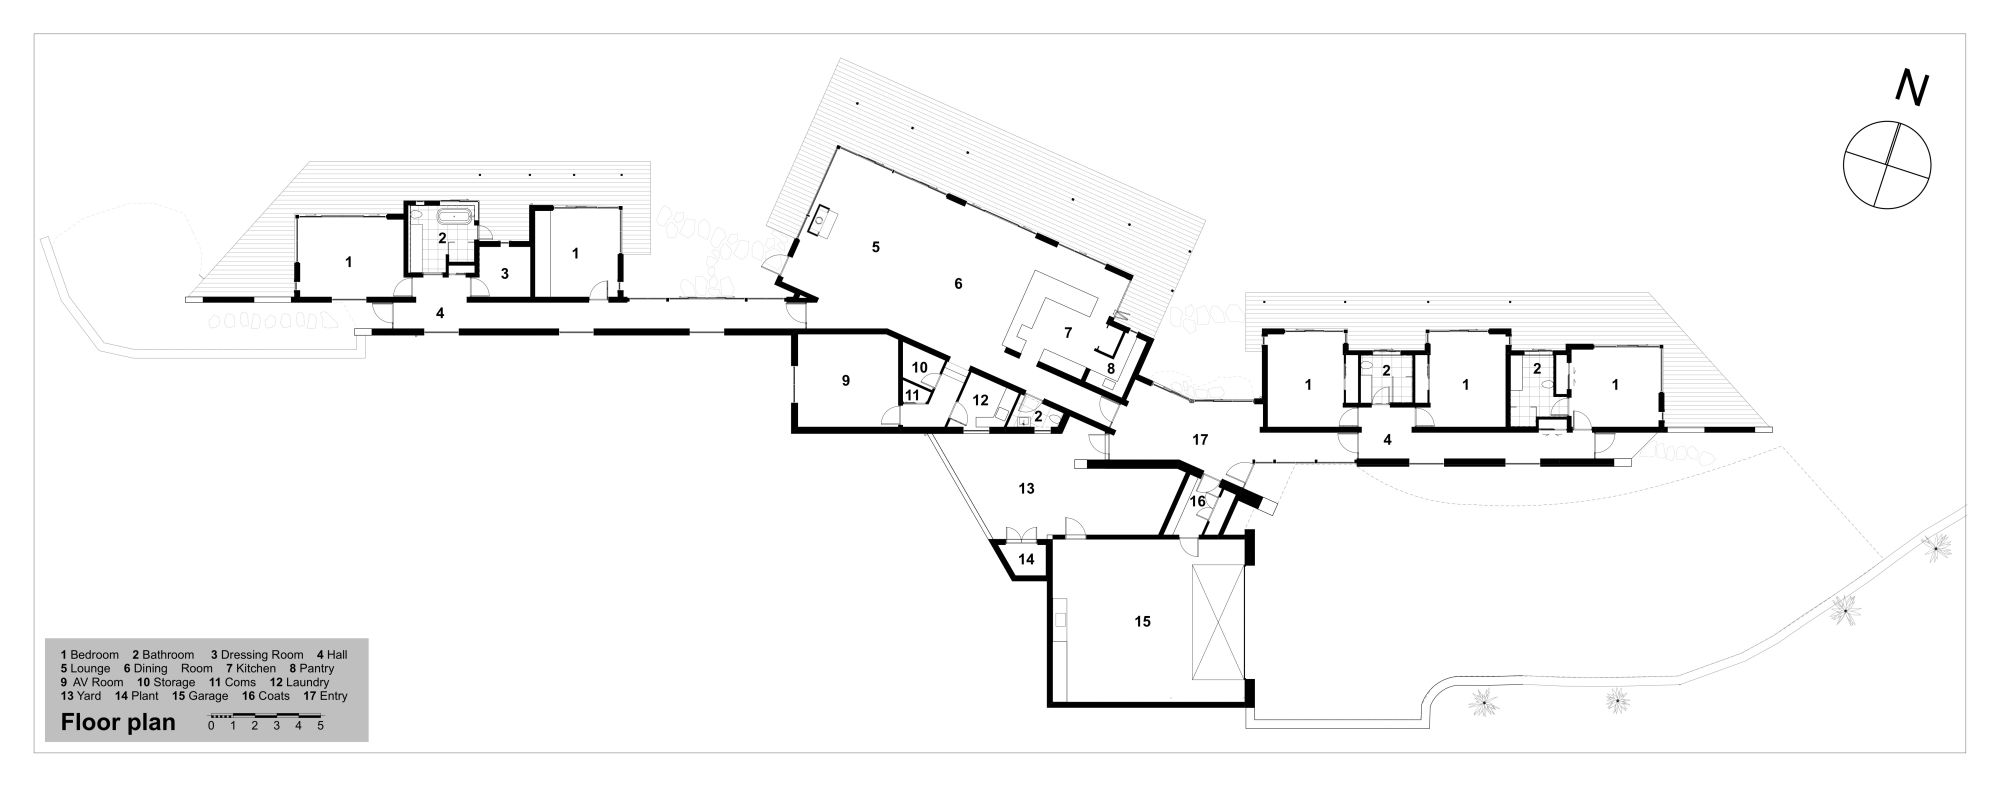 5227ff87e8e44e5fdf00004a_brewer-house-sarah-scott-architects-ltd_03_floor_plan.png (2000×787)